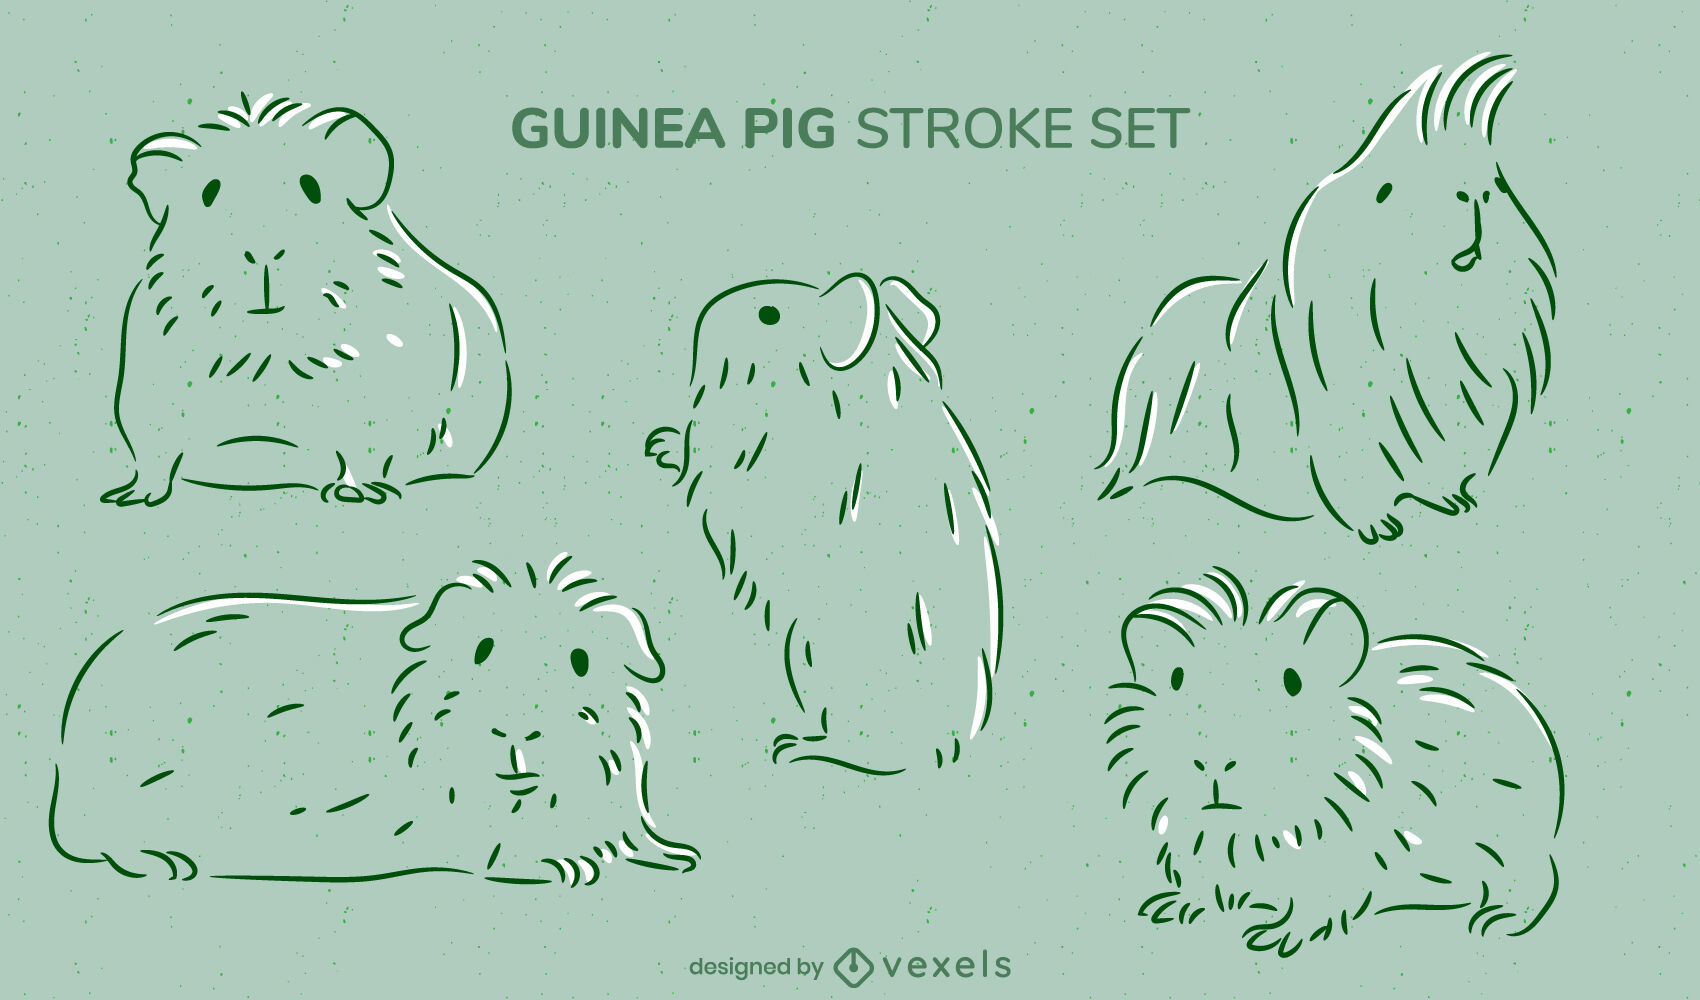 Guinea pigs rodent animals stroke set